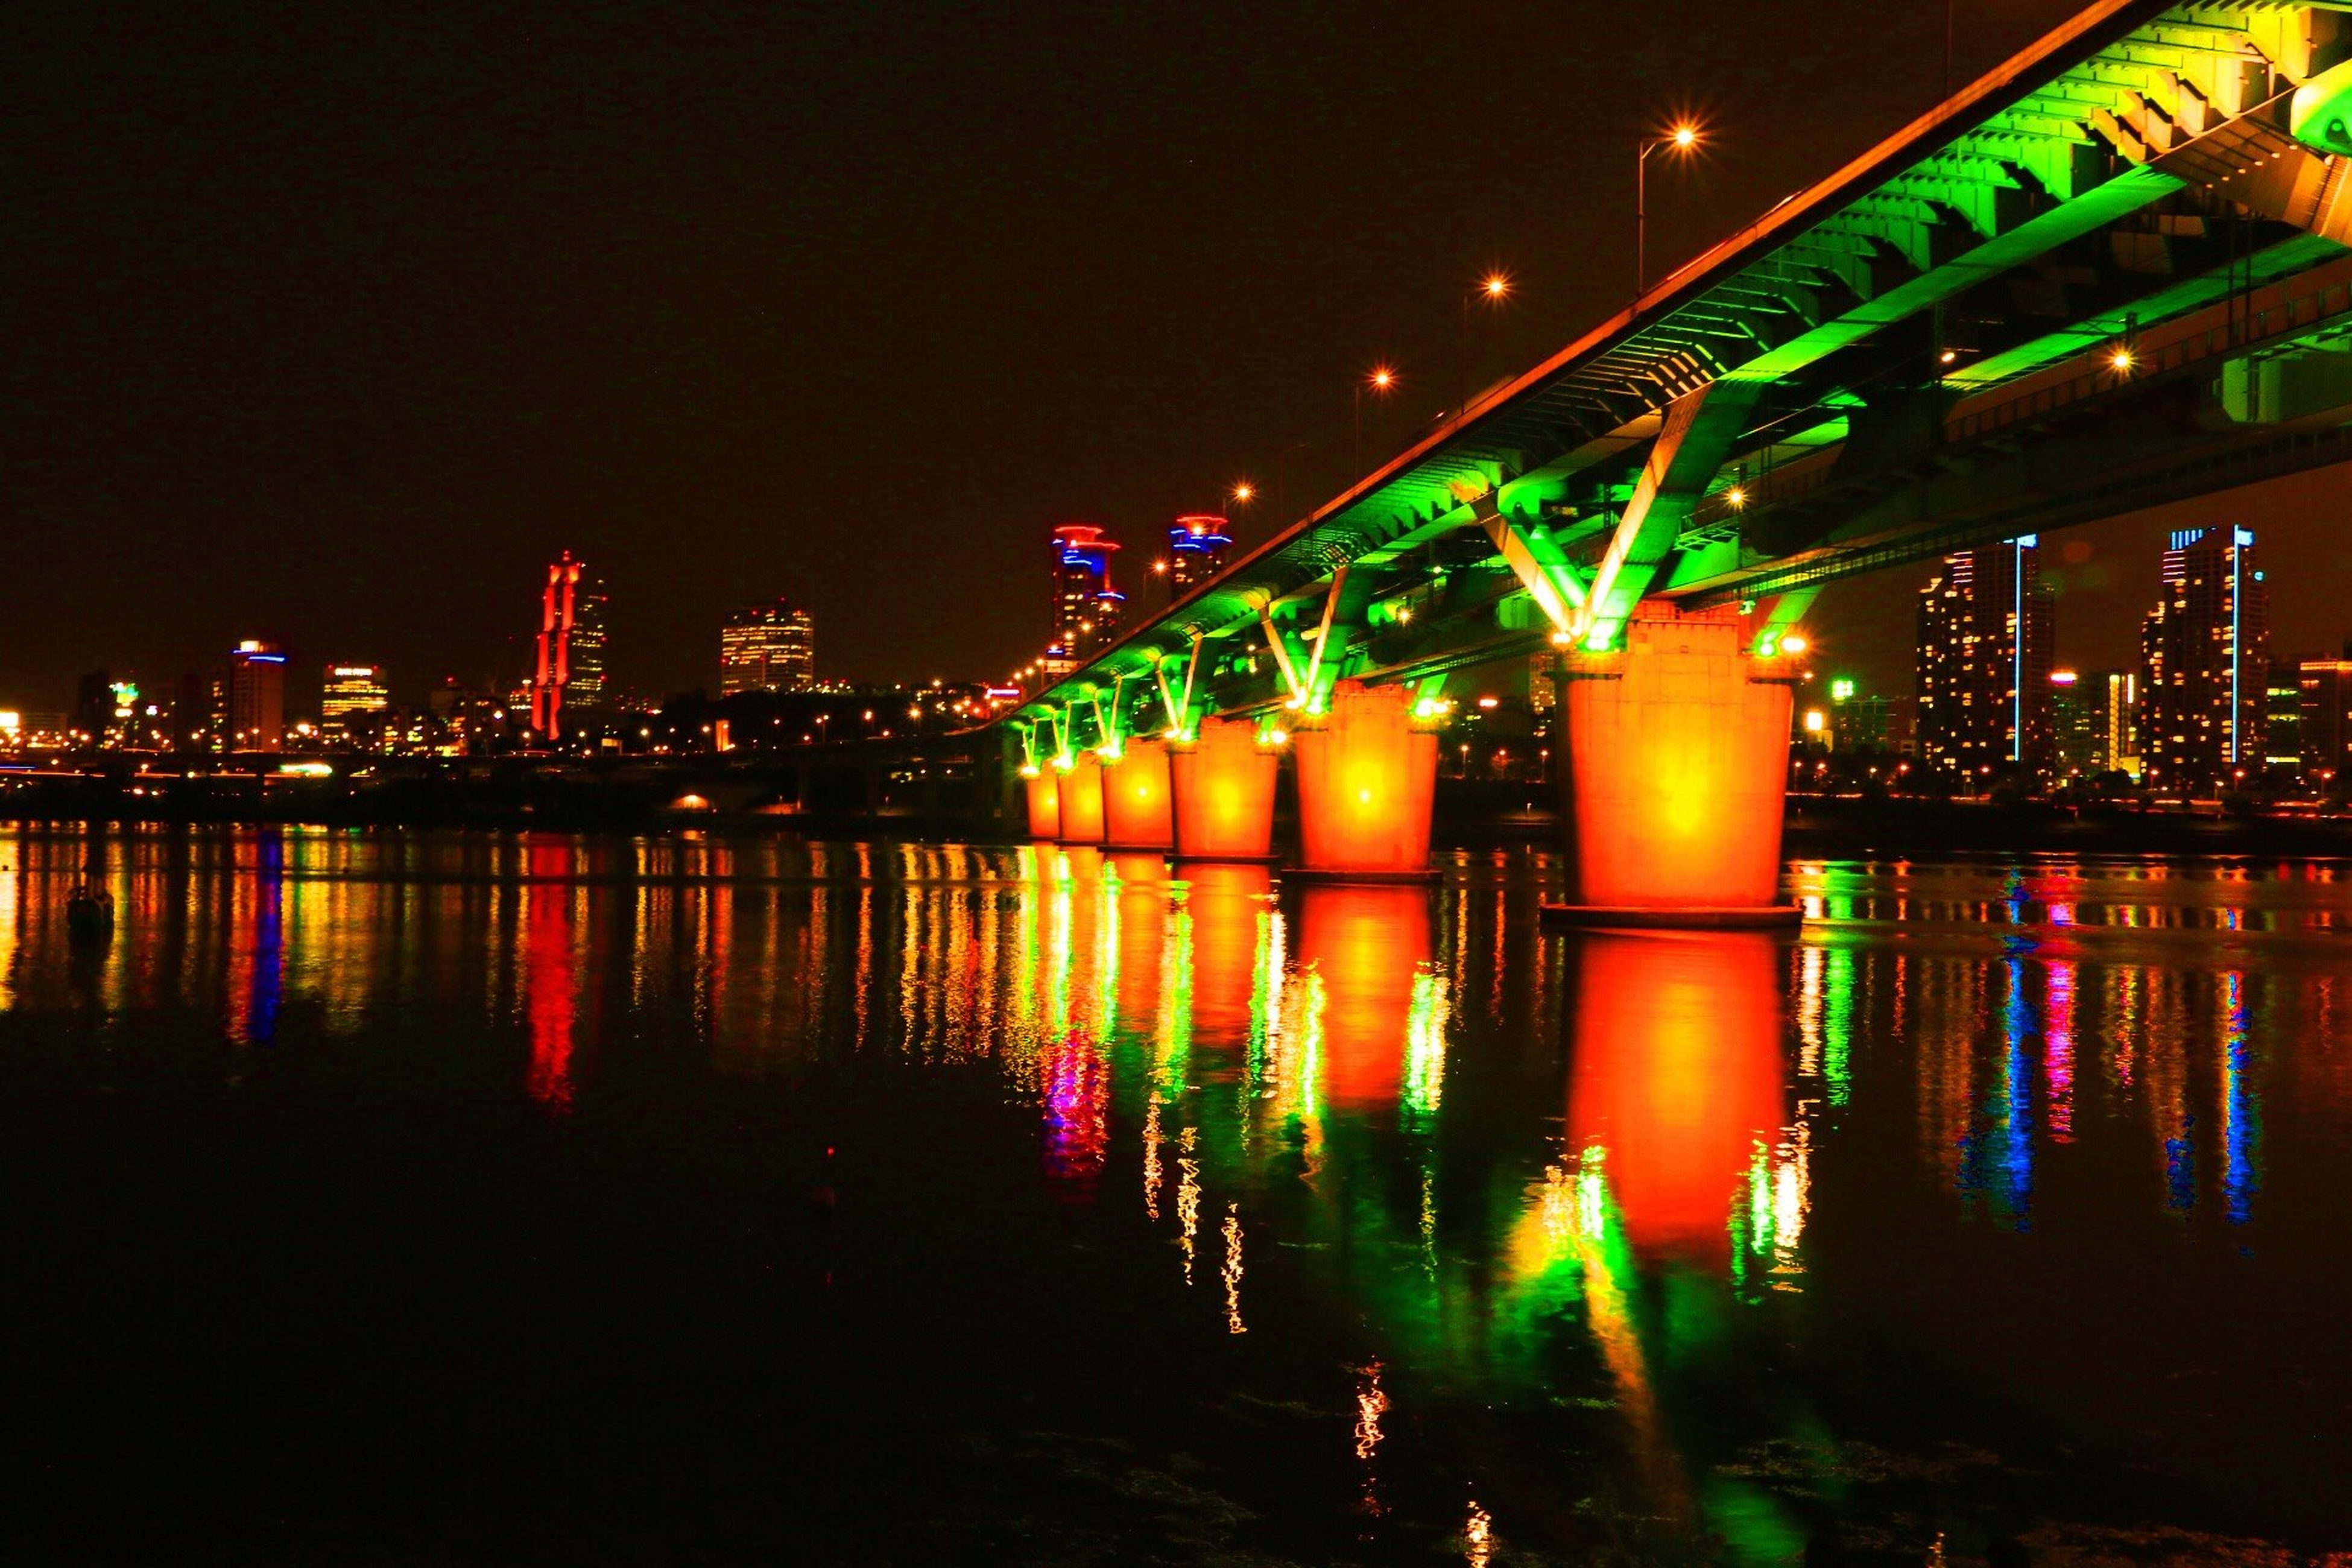 illuminated, night, reflection, water, architecture, built structure, building exterior, waterfront, river, city, lighting equipment, connection, bridge - man made structure, sky, multi colored, light, street light, outdoors, light - natural phenomenon, clear sky